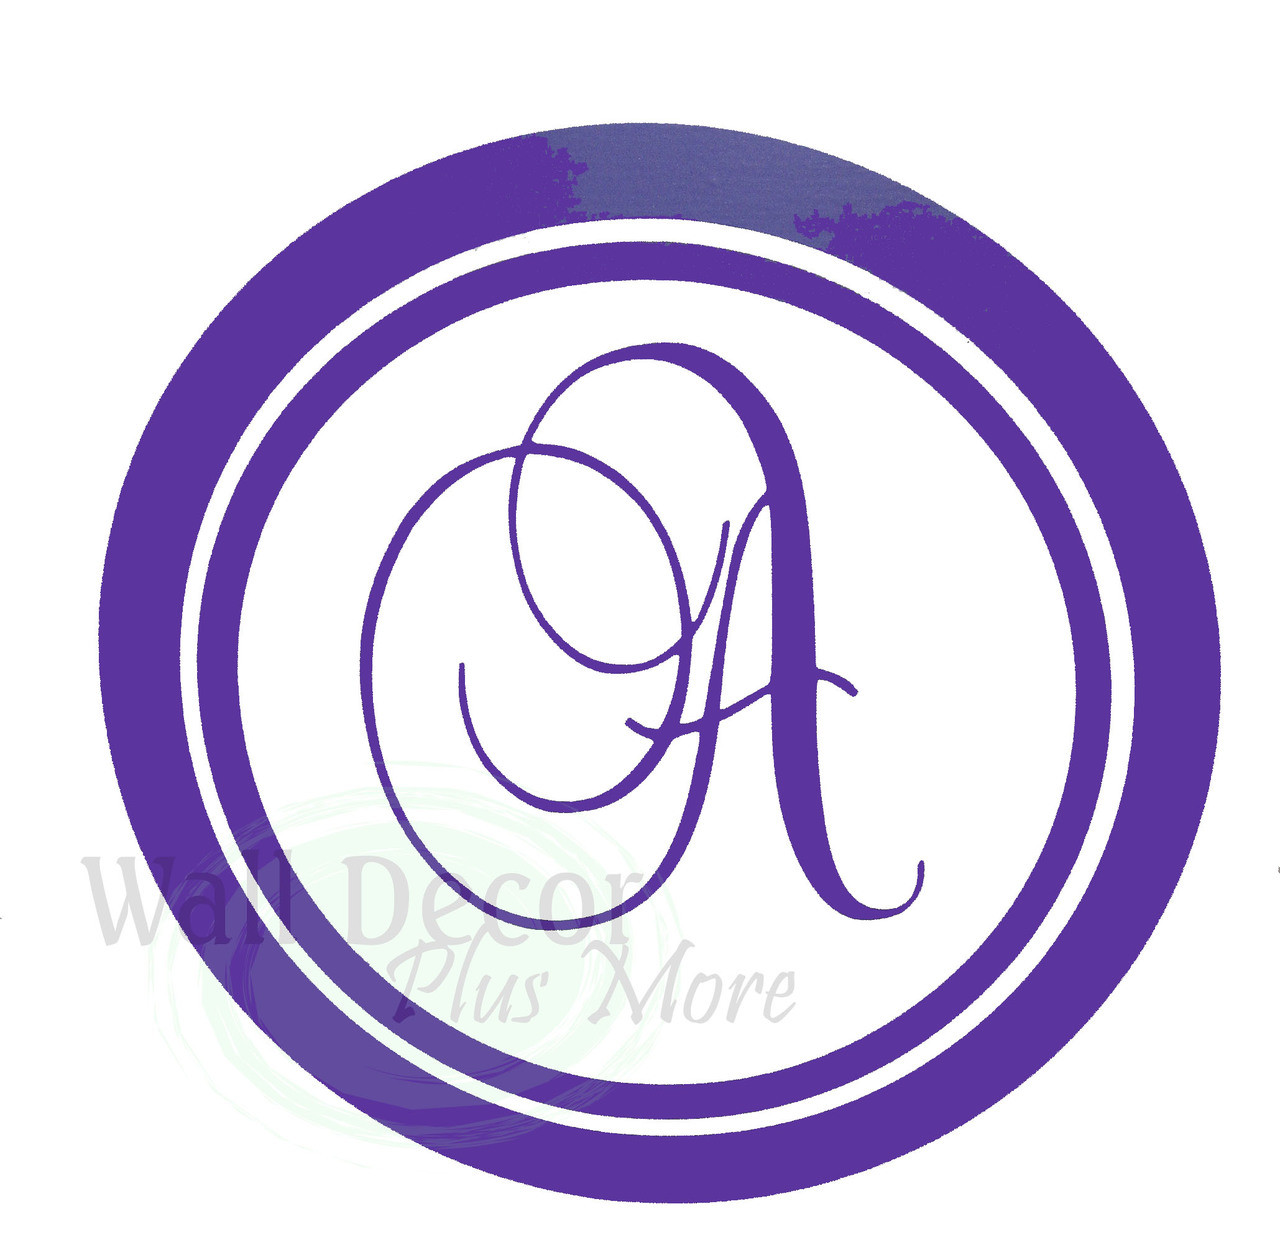 Personalized Monogram Letter Wall Stickers Vinyl Decals Custom Graphic.  Loading Zoom